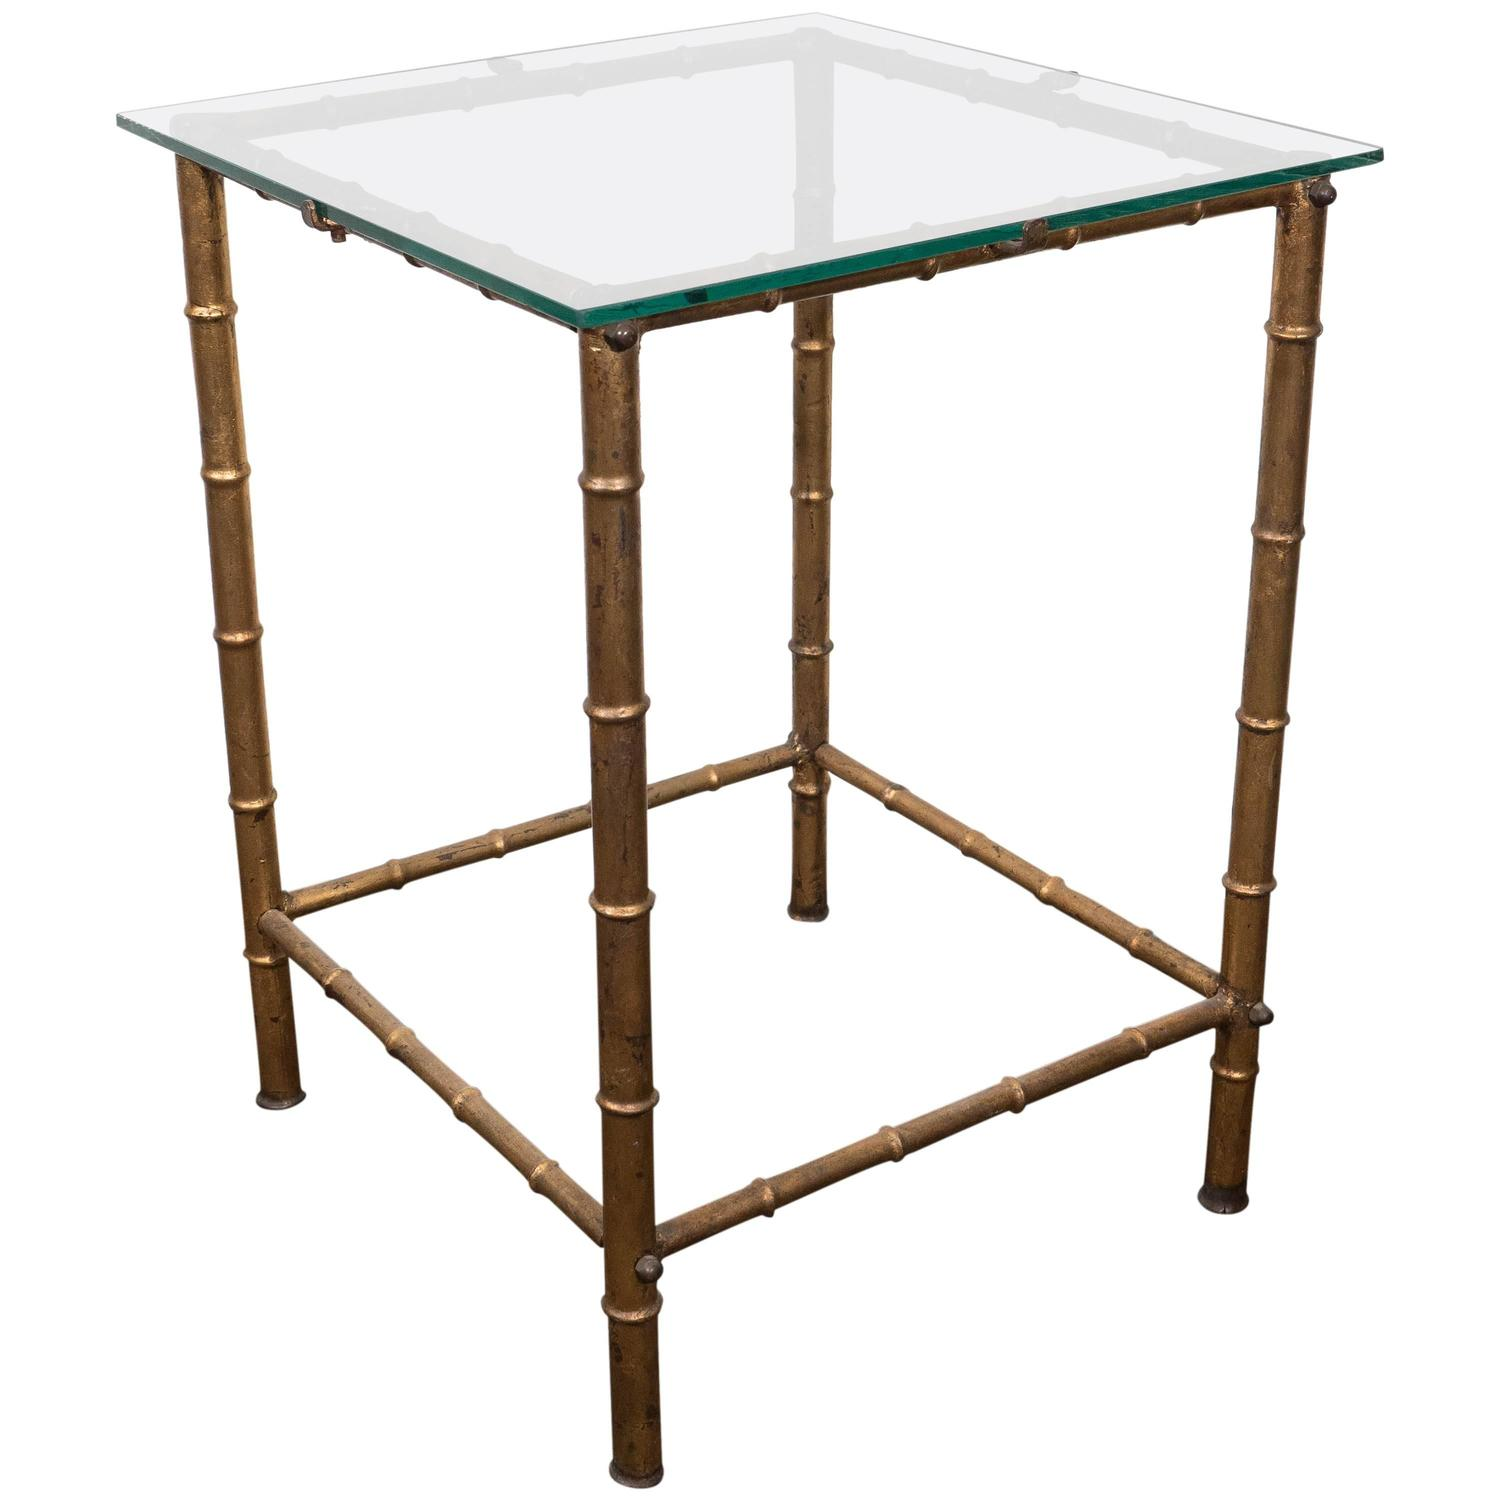 Midcentury Gold Leaf Bamboo Motif Side Table with Glass Top by